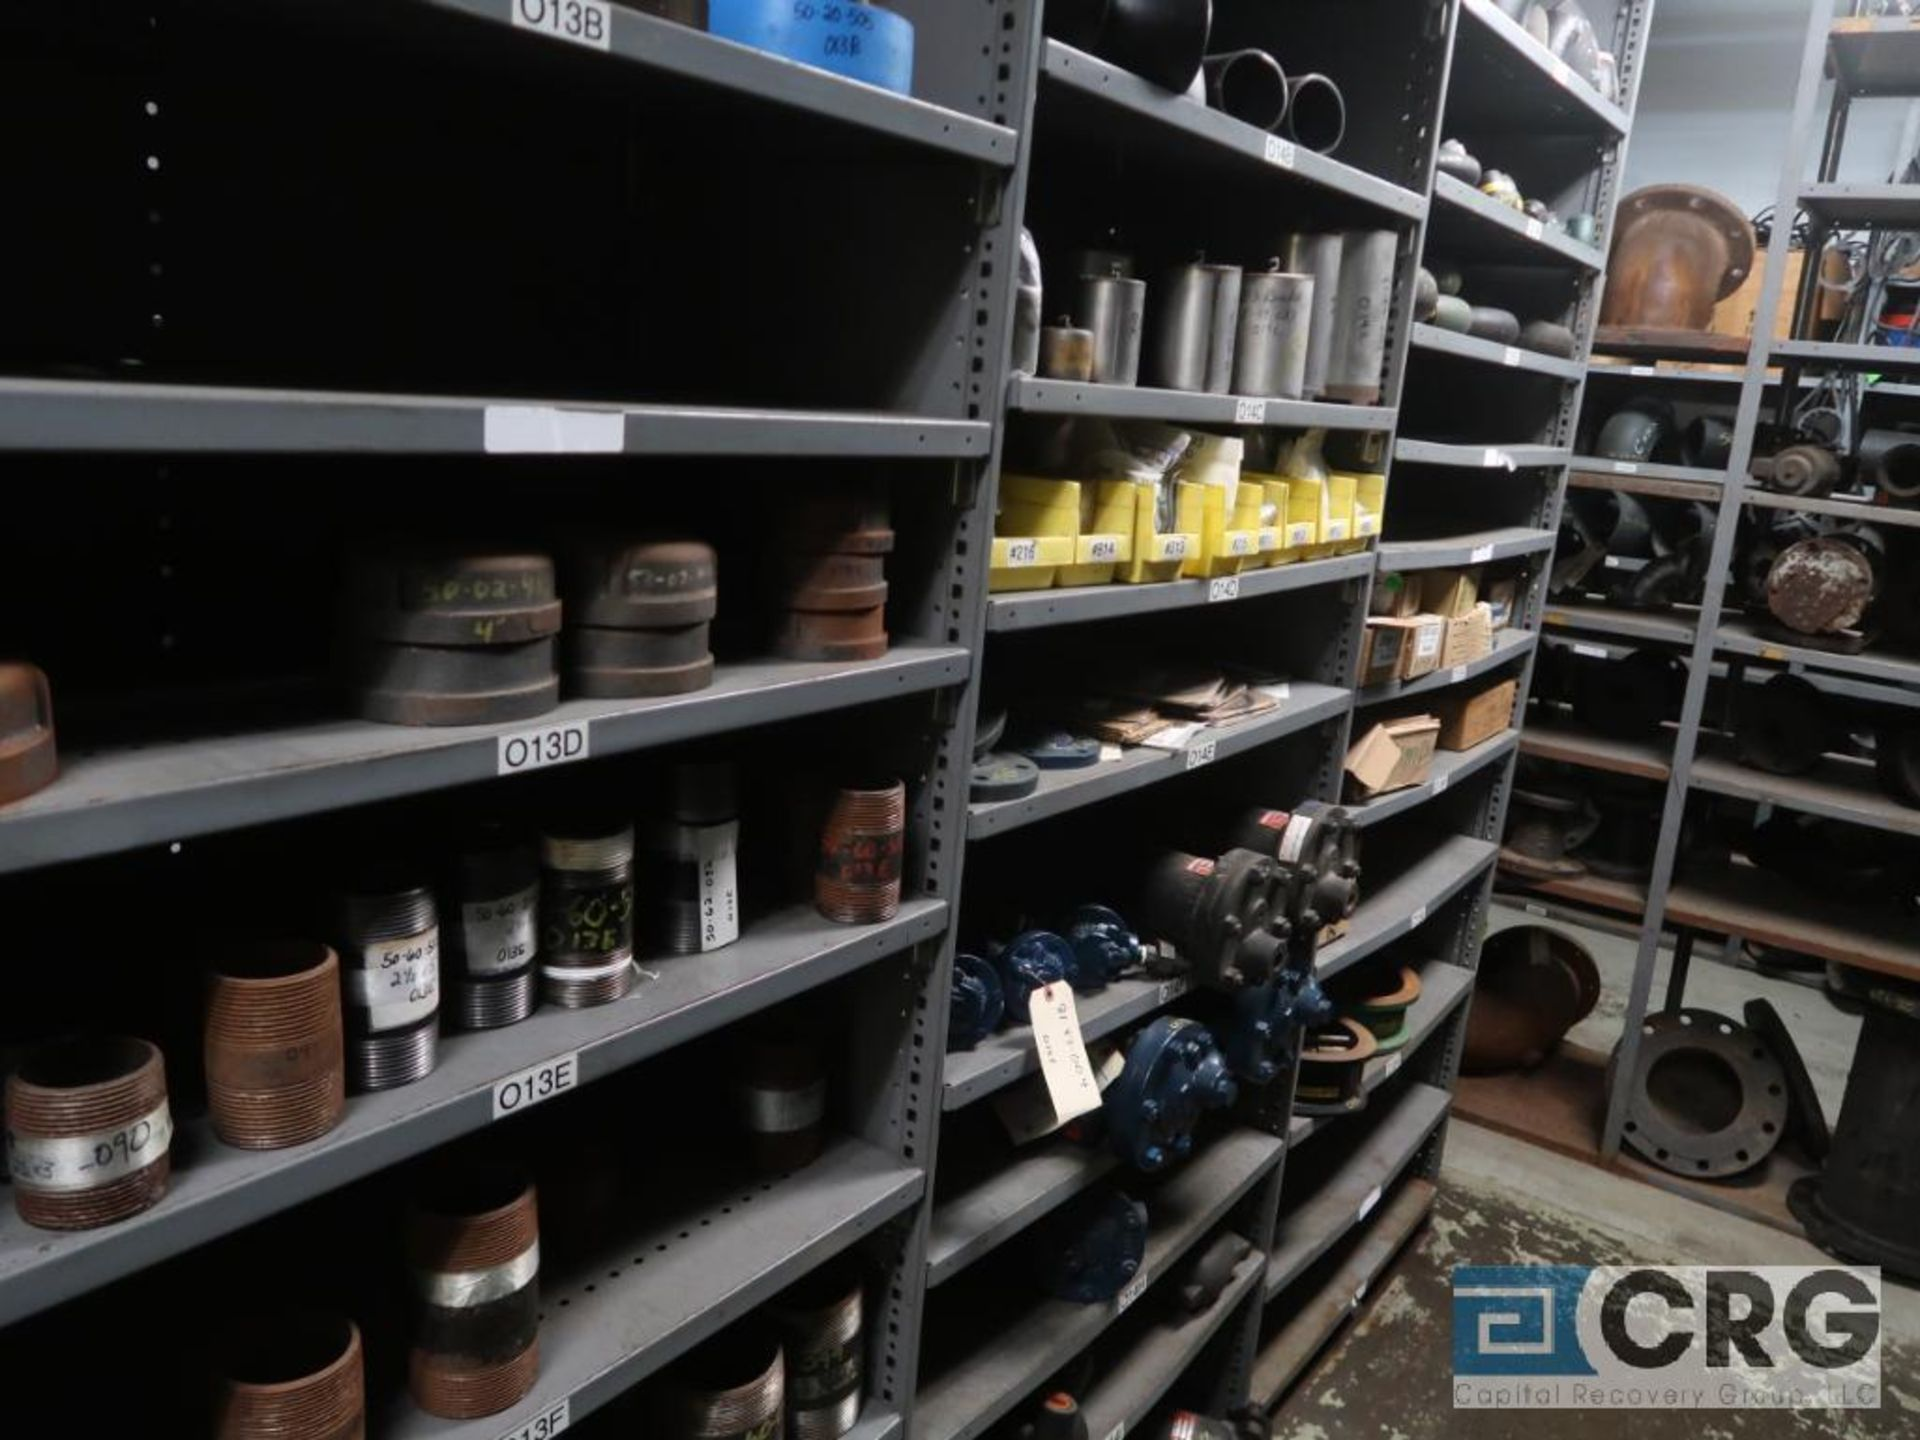 Lot of (30) sections with assorted parts including gears, chain, walves, packing, gaskets, and - Image 6 of 9